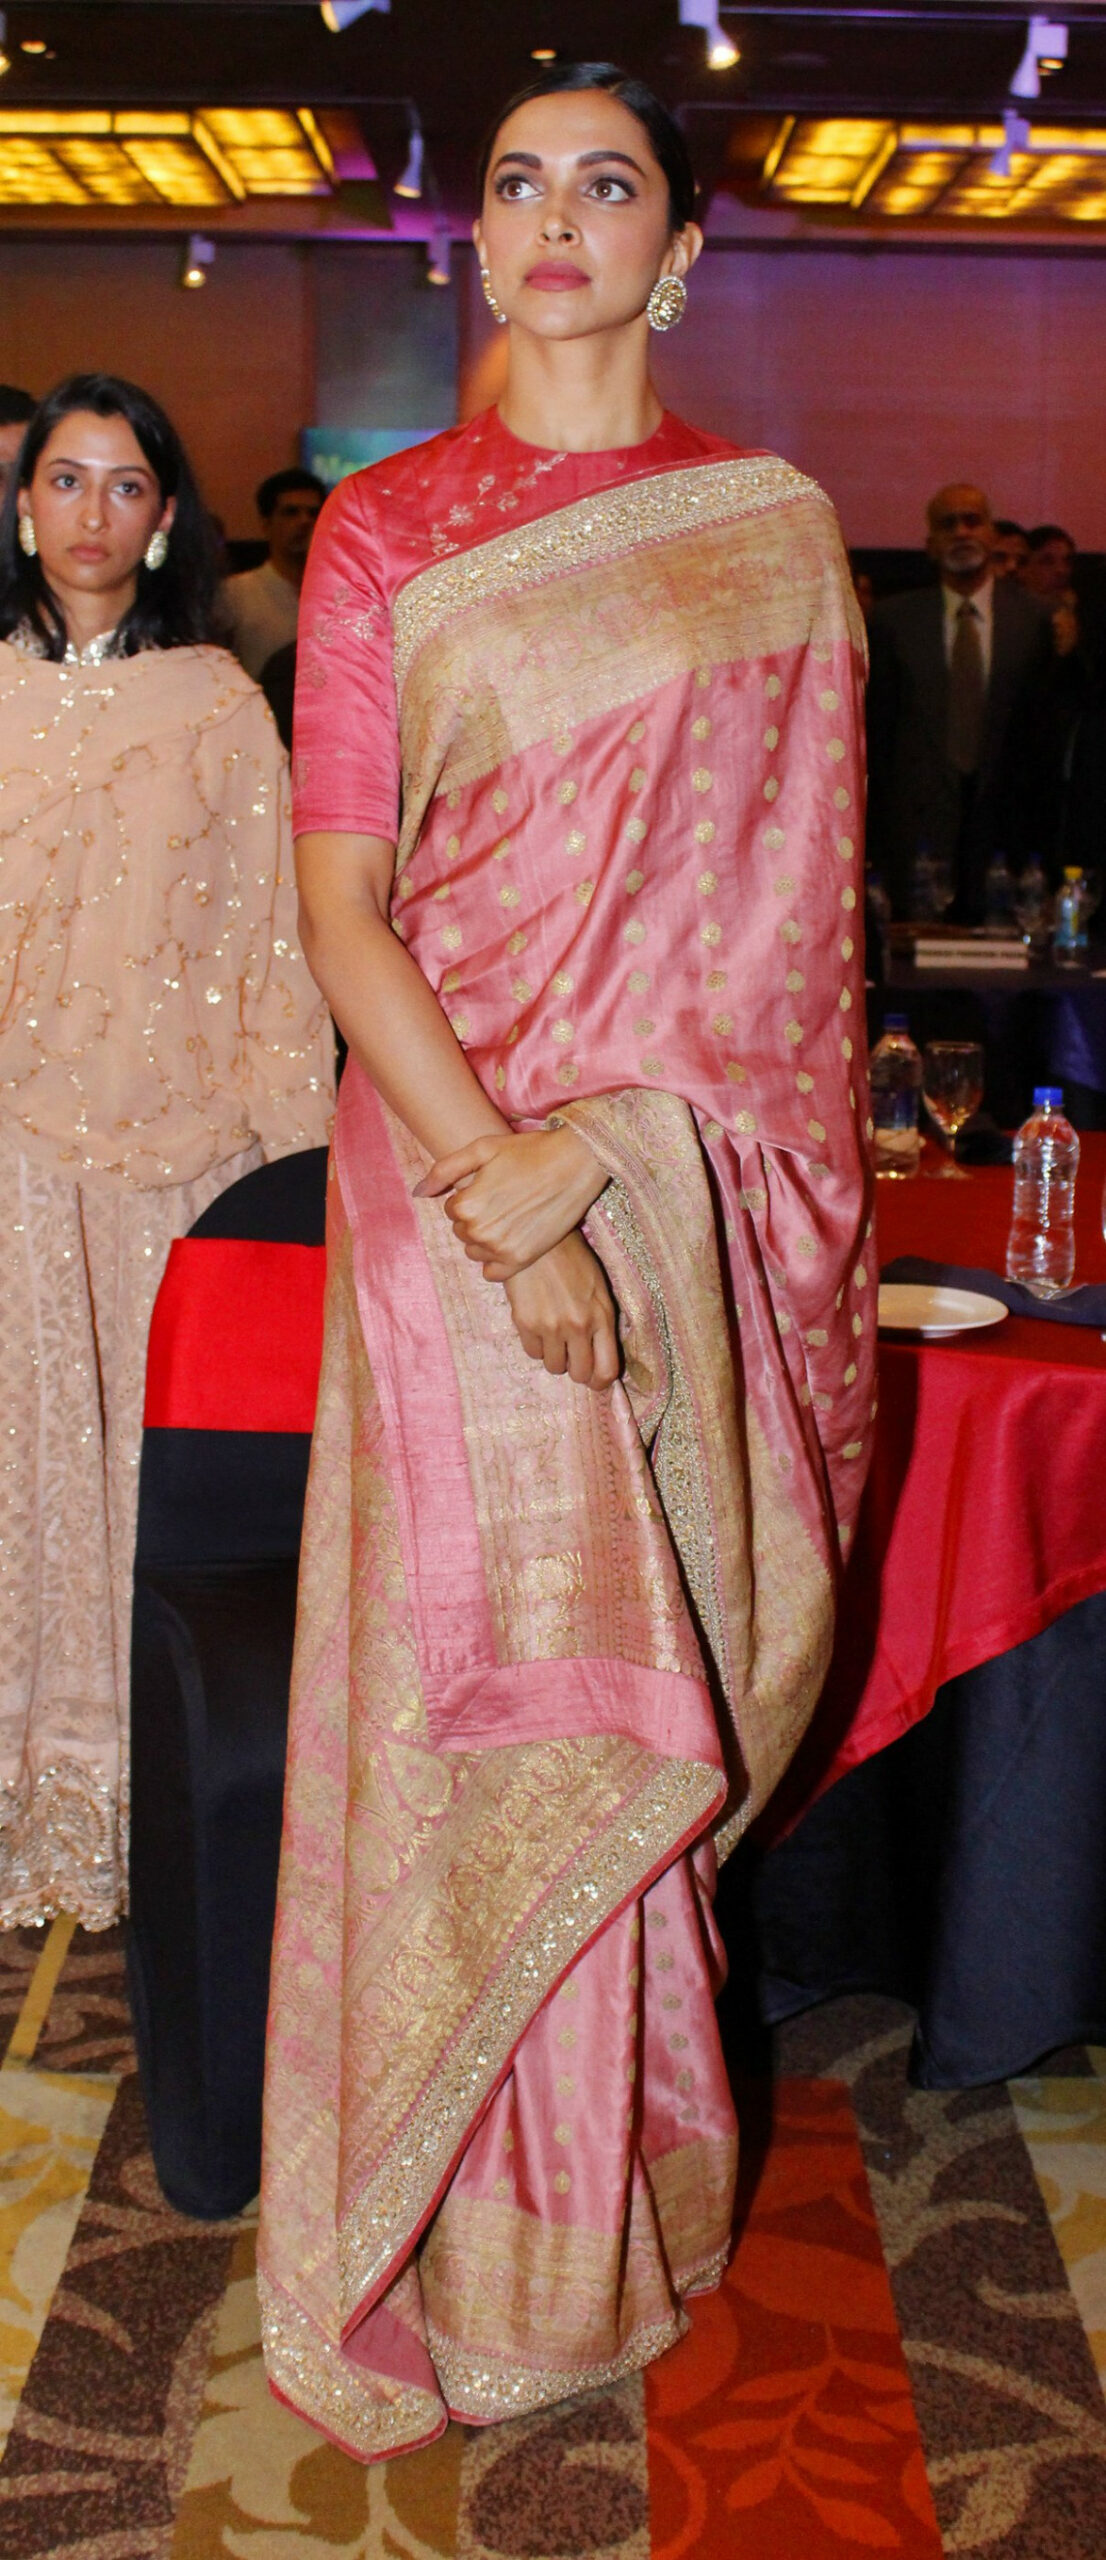 Deepika Padukone turns heads at the capital in this